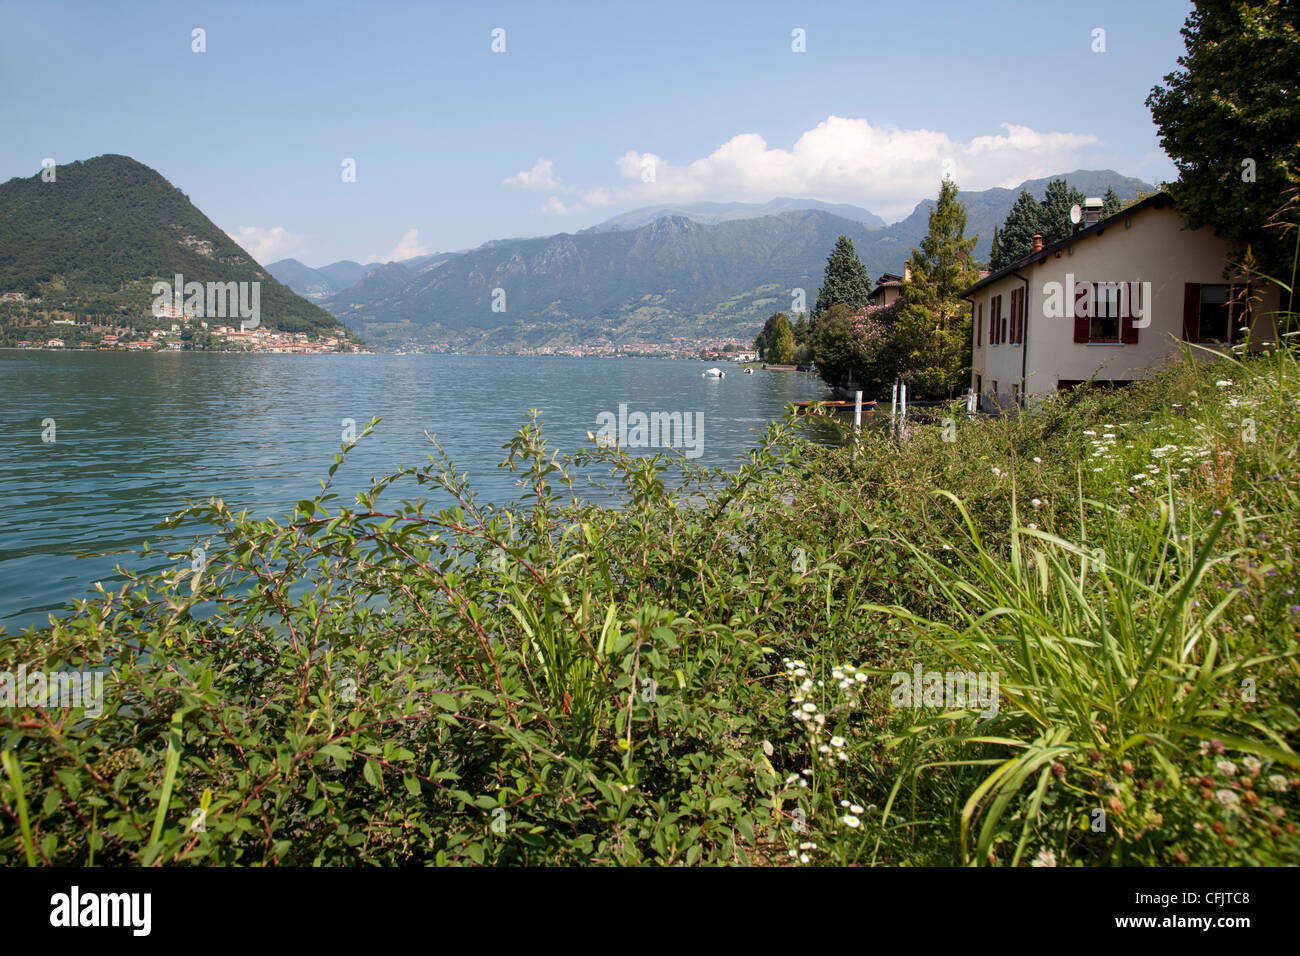 Lakeside near Sulzano, Lake Iseo, Lombardy, Italian Lakes, Italy, Europe - Stock Image